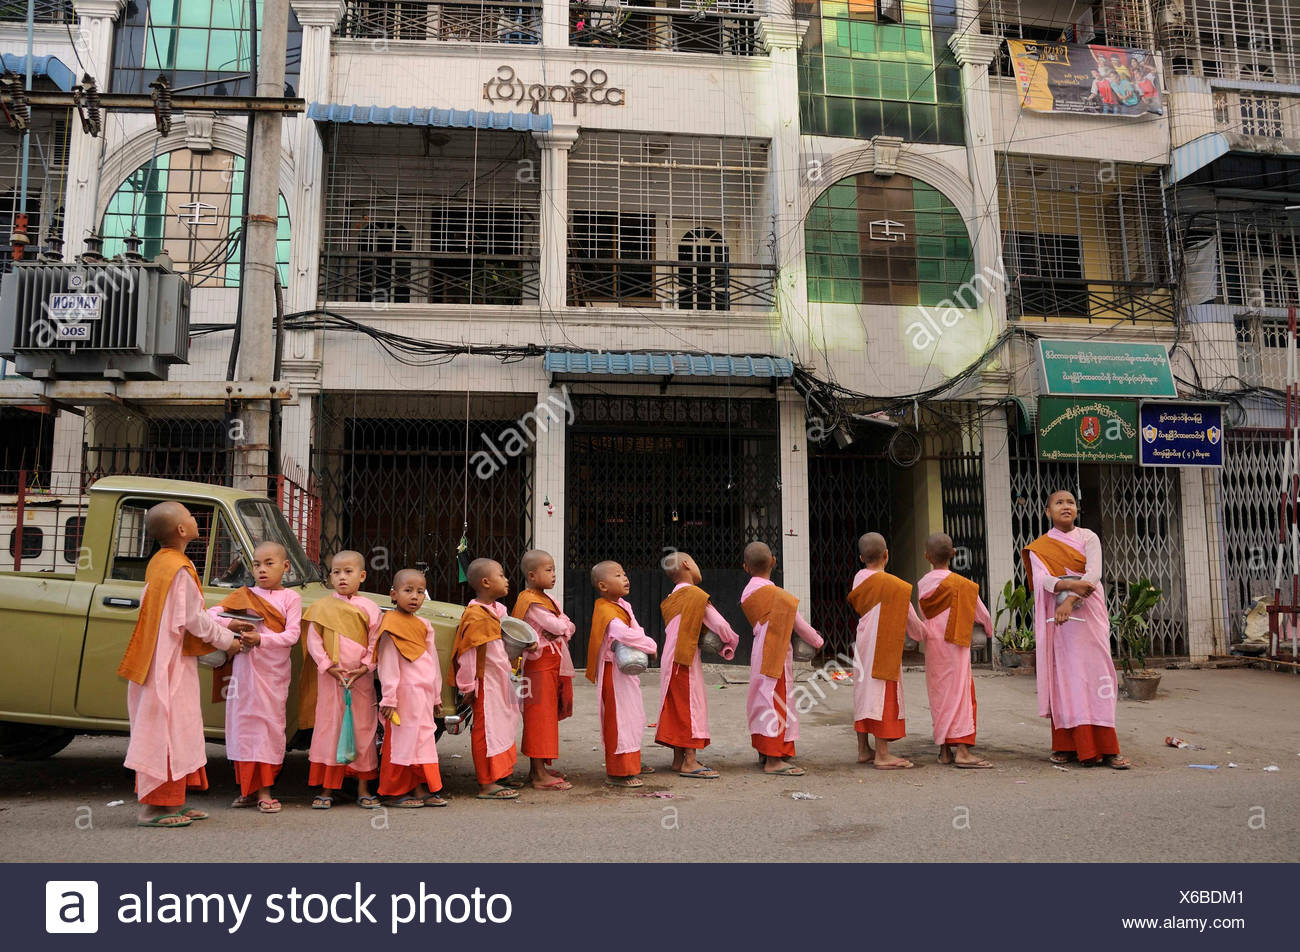 buddhist single women in beatrice A holy life and being a follower of the real buddhism way of life can be particularly hard in places where buddhism is not so wide spread.